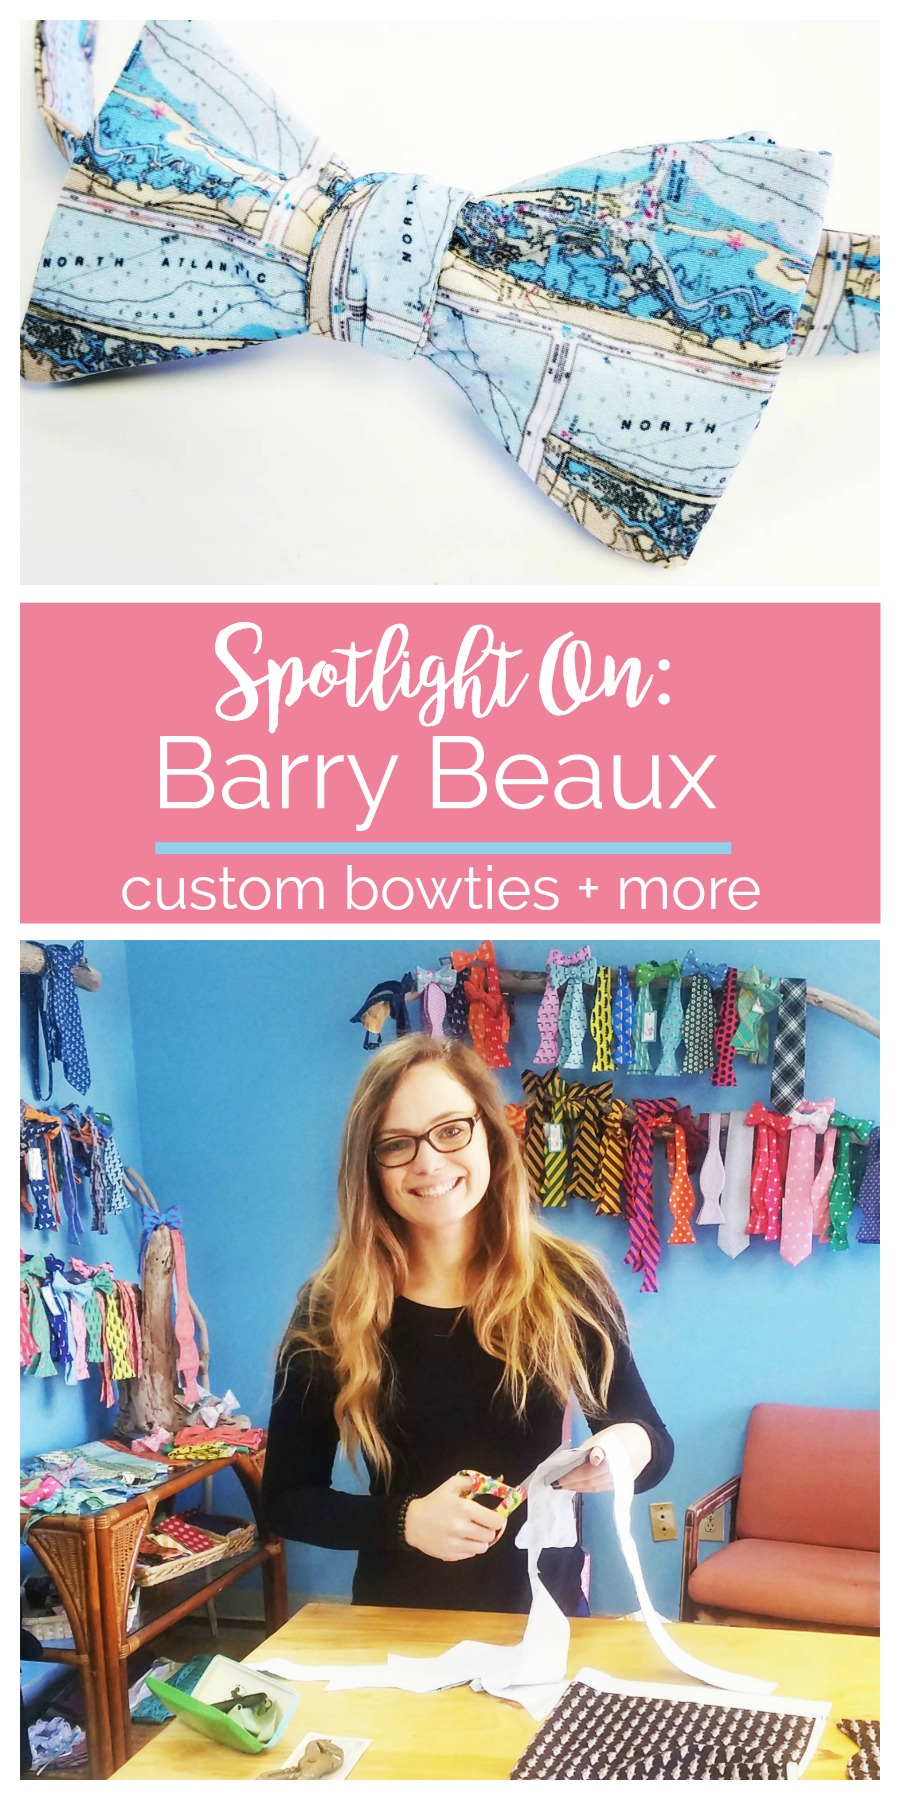 Spotlight On: Barry Beaux | Palmetto State Weddings